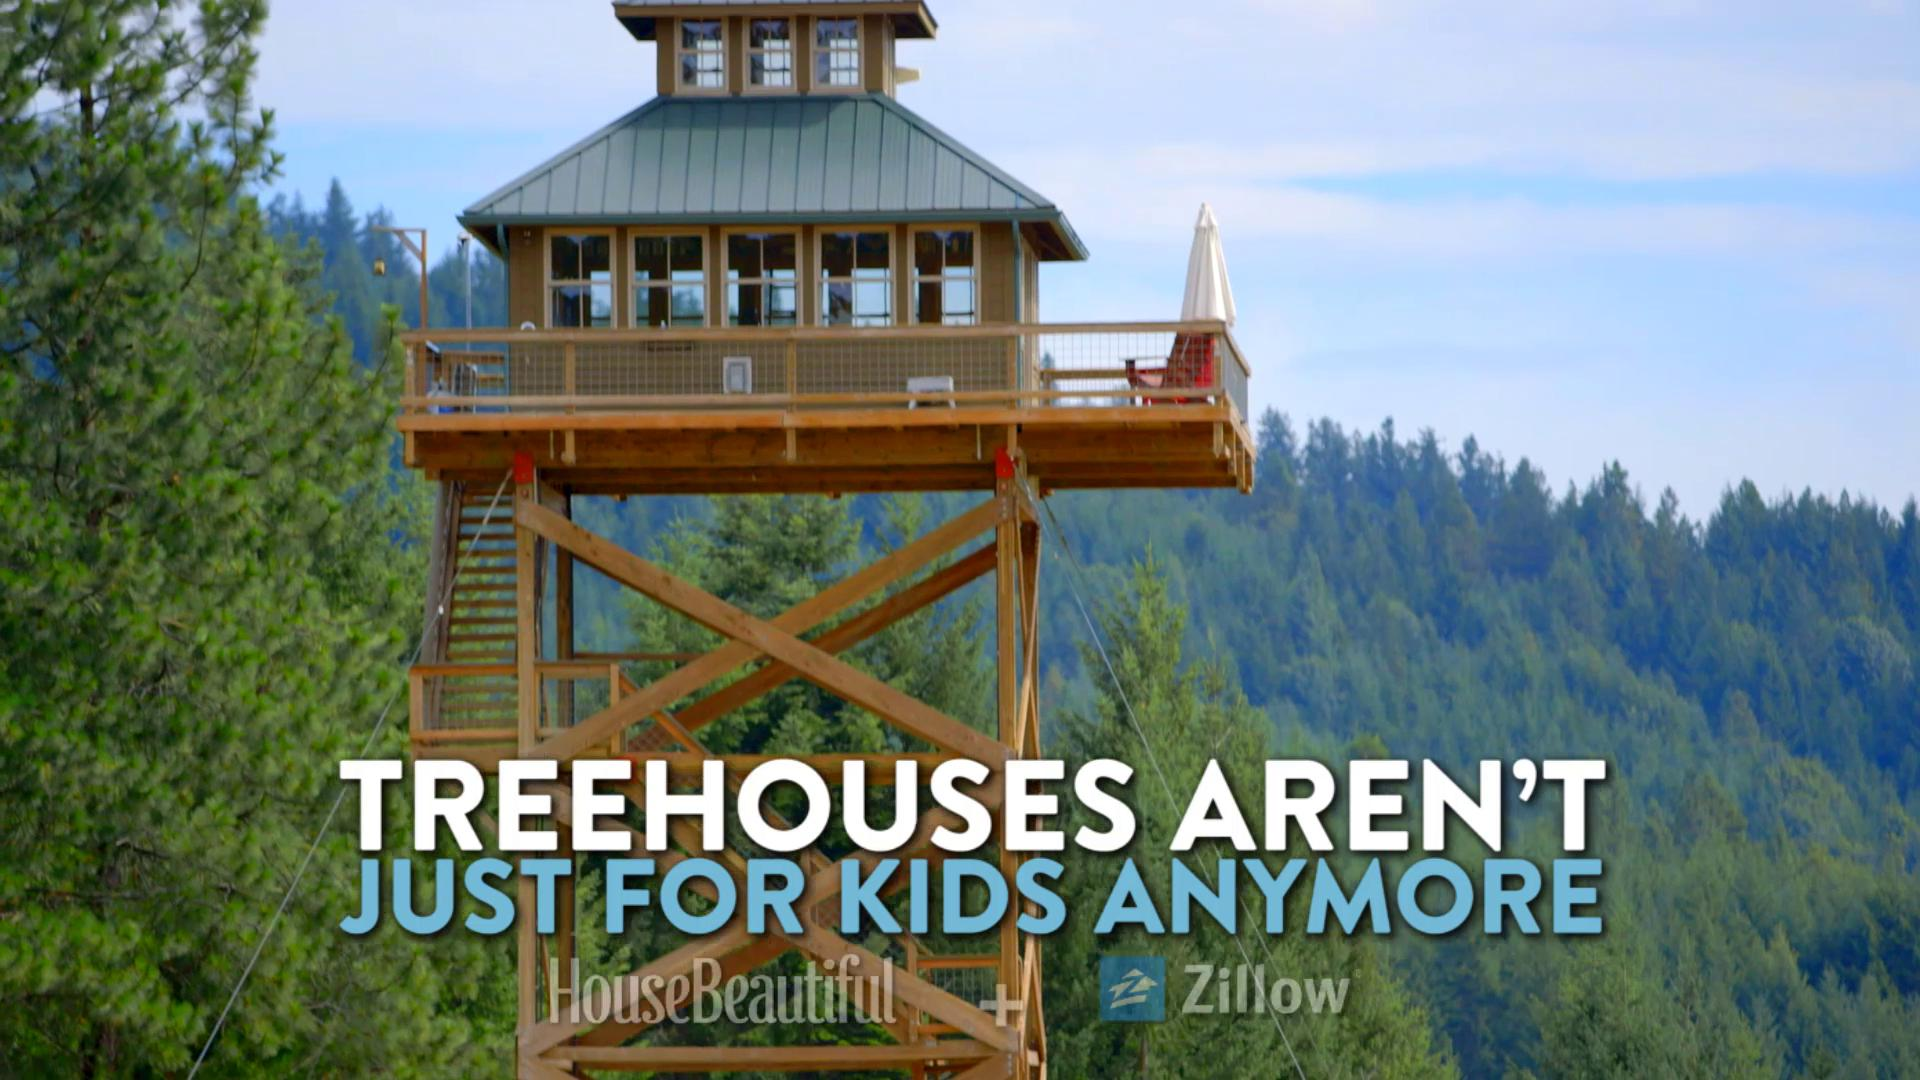 Treehouses Aren't Just For Kids Anymore! https://t.co/phugoiSLow